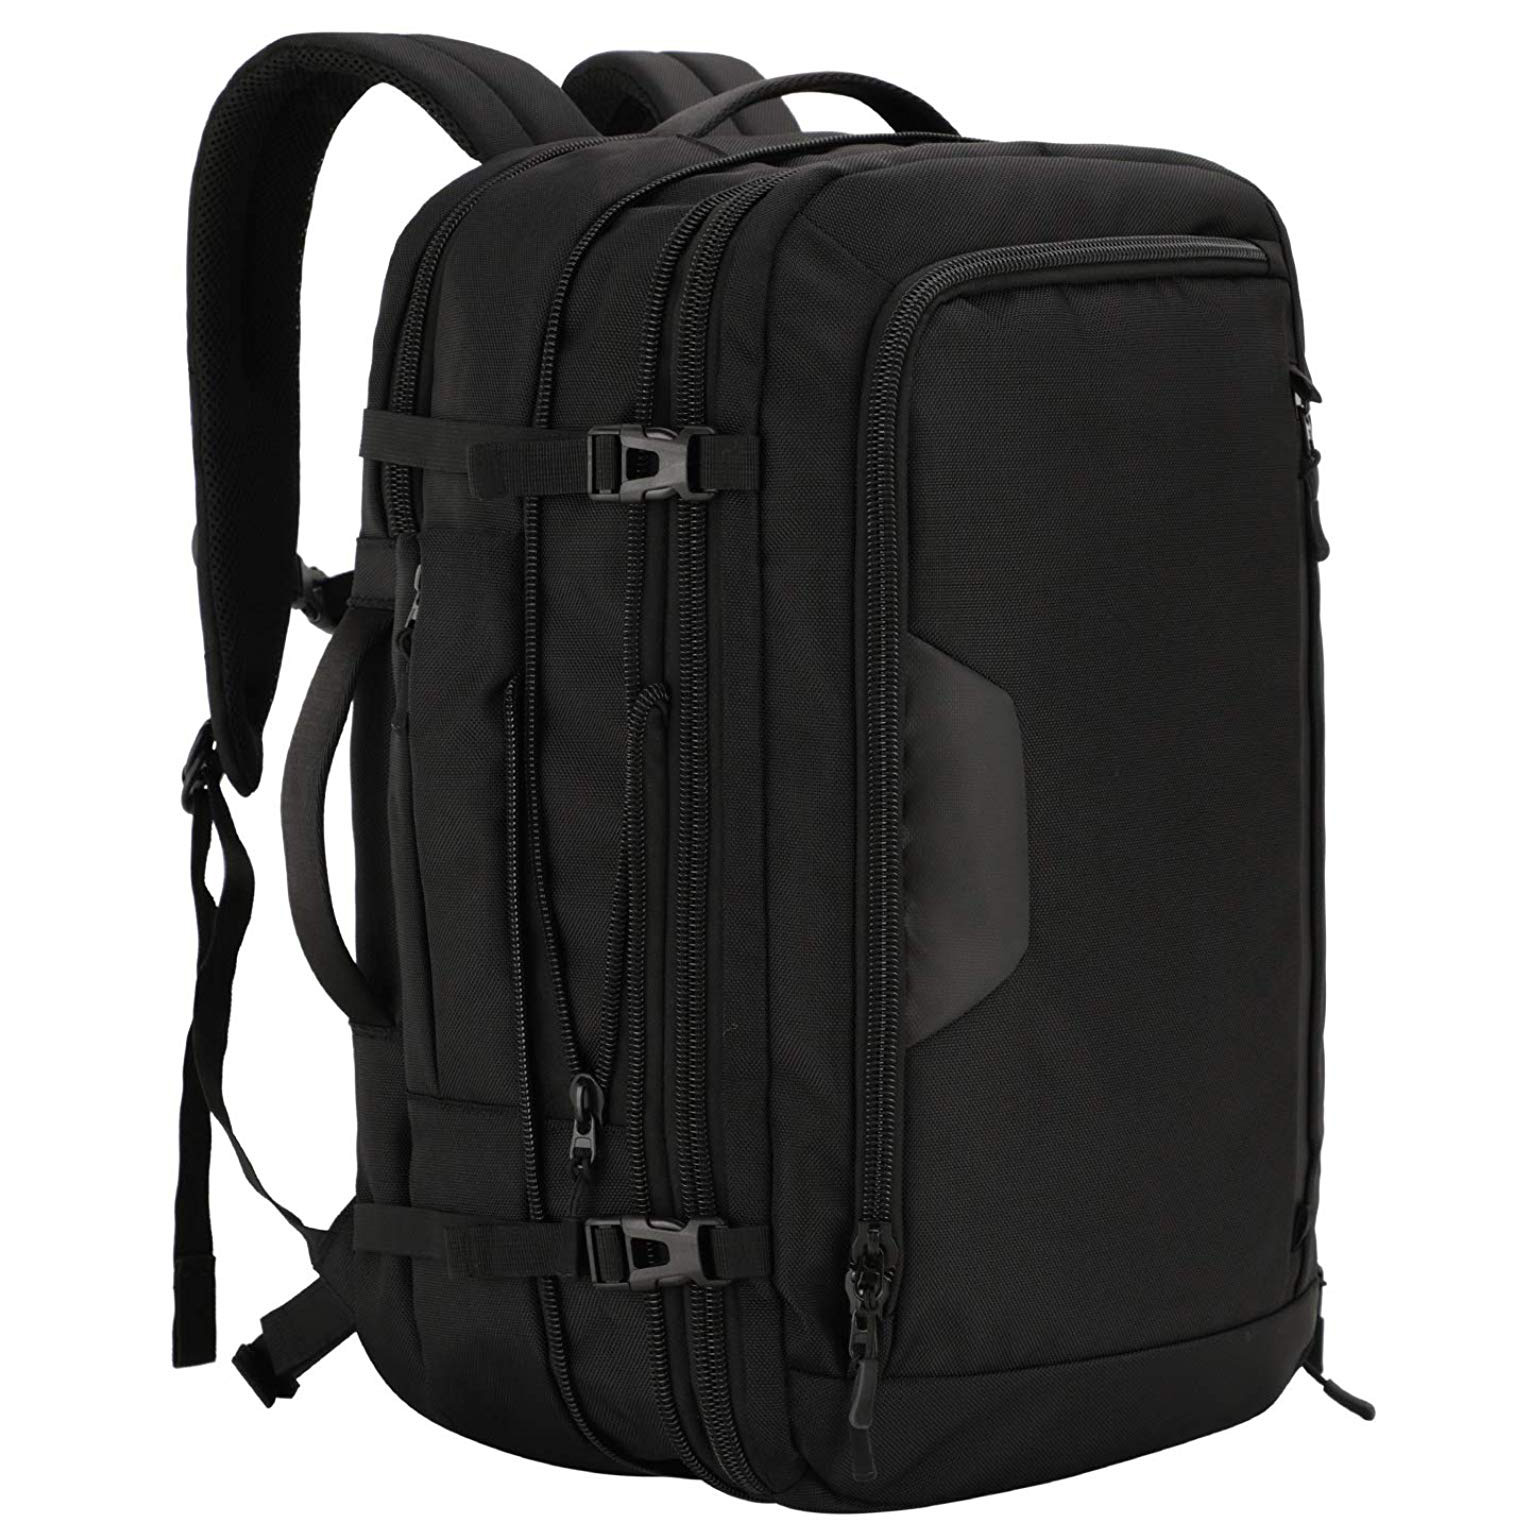 MIER Expandable Travel Backpack Waterproof Carry-on Weekender Bag